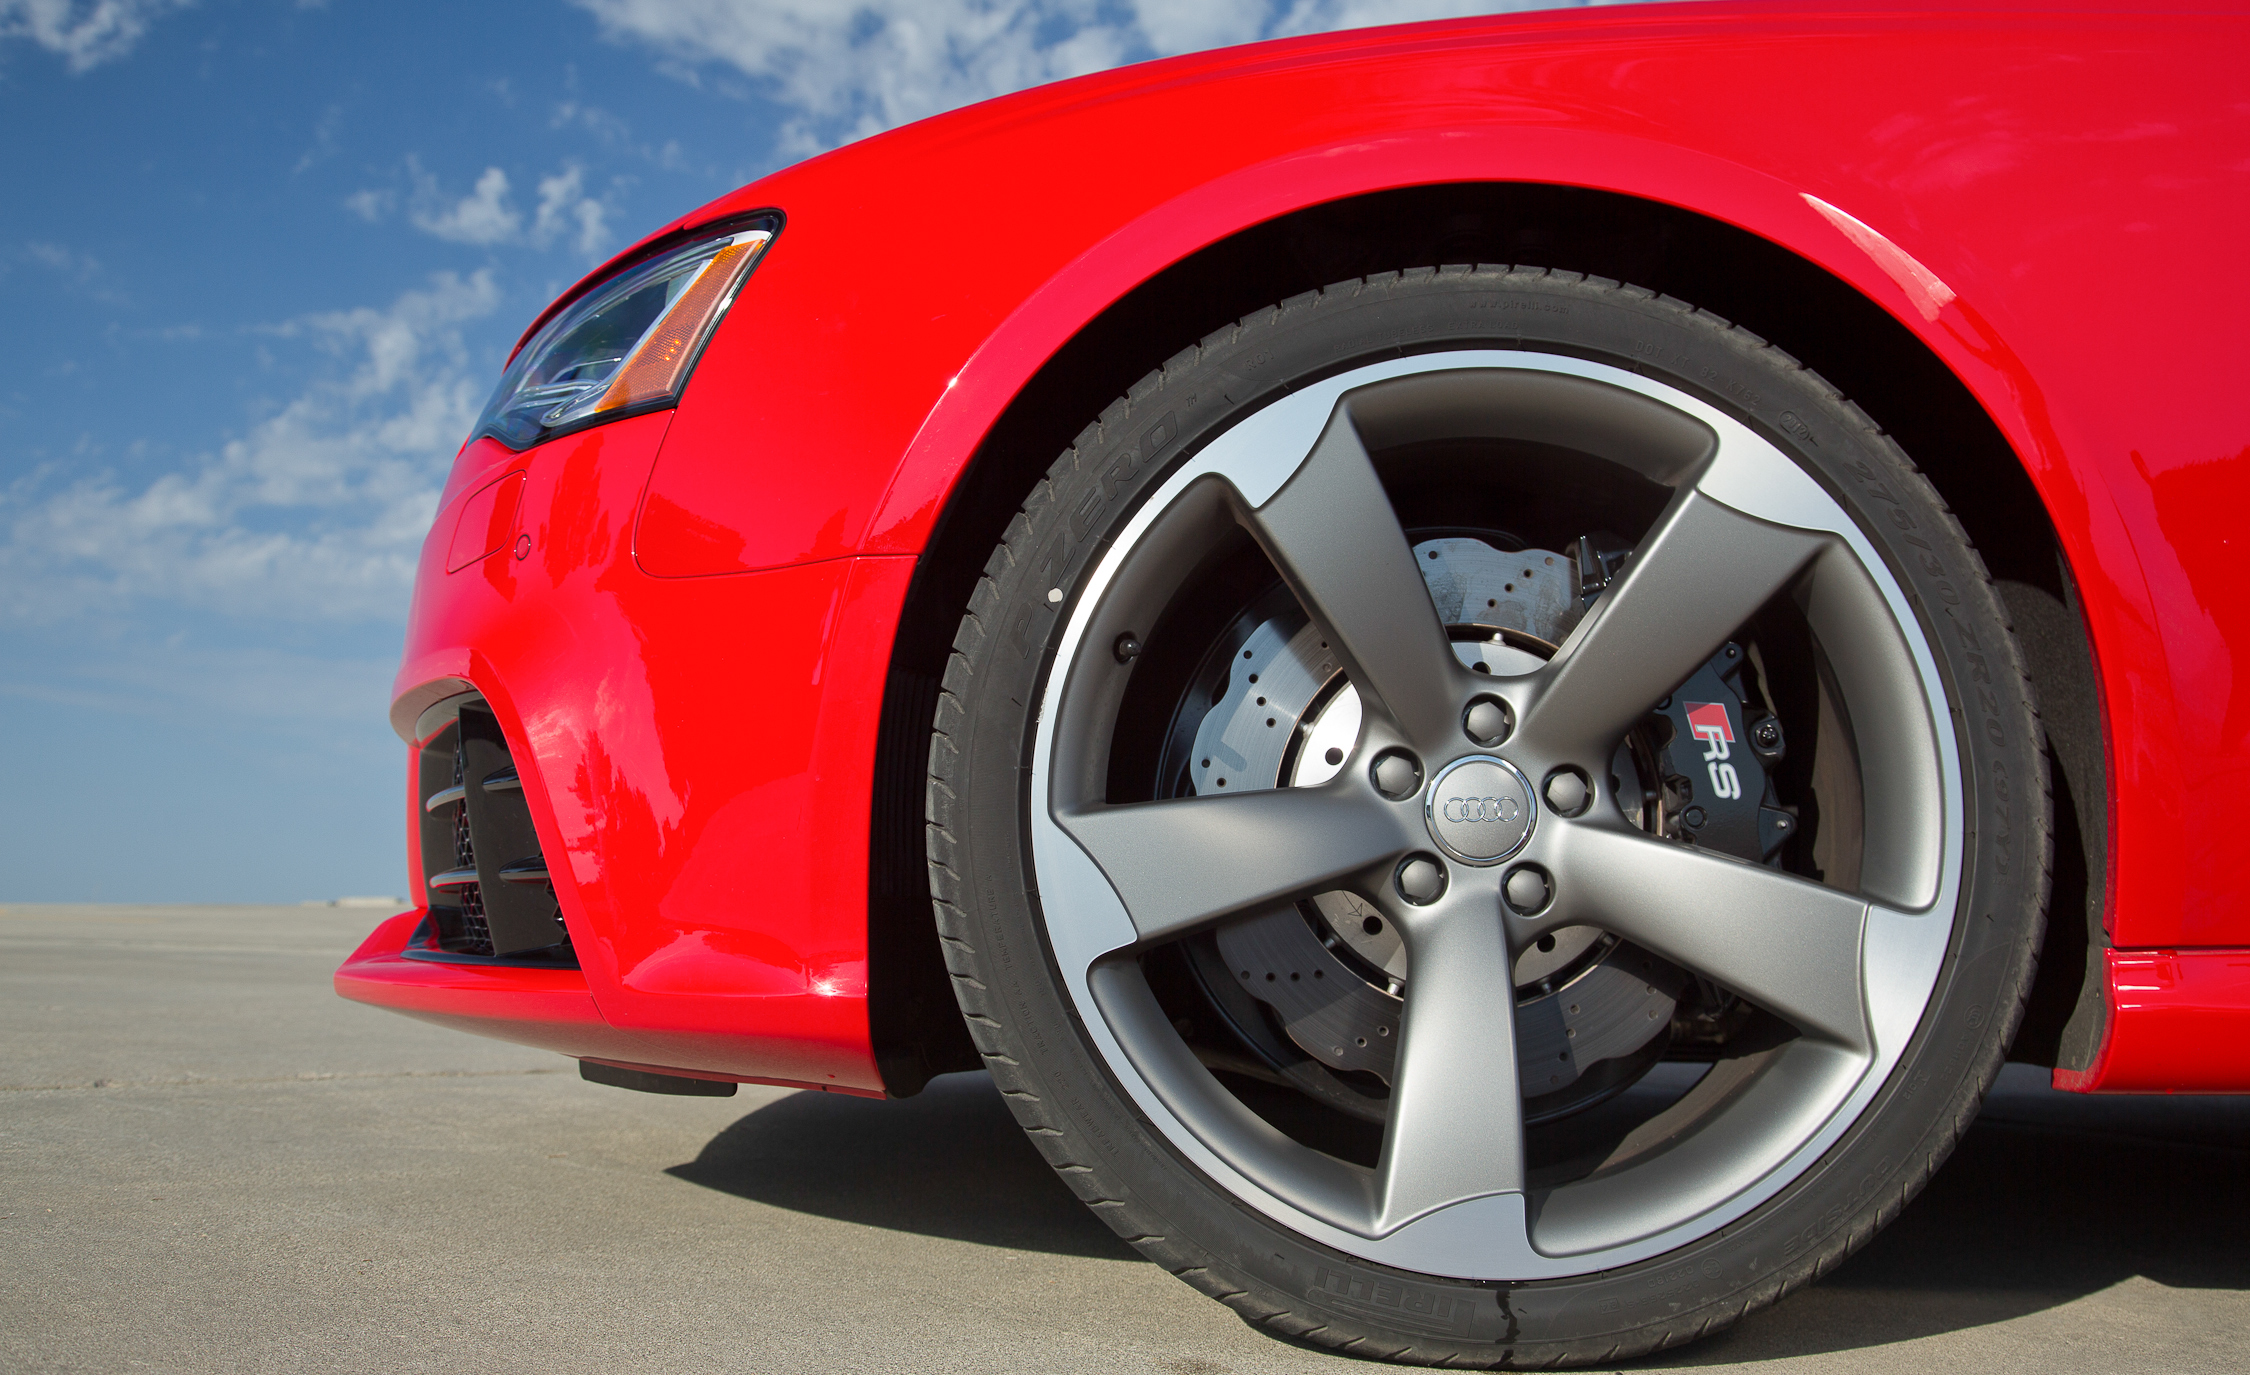 2013 Audi RS 5 Exterior View Wheel (Photo 17 of 41)